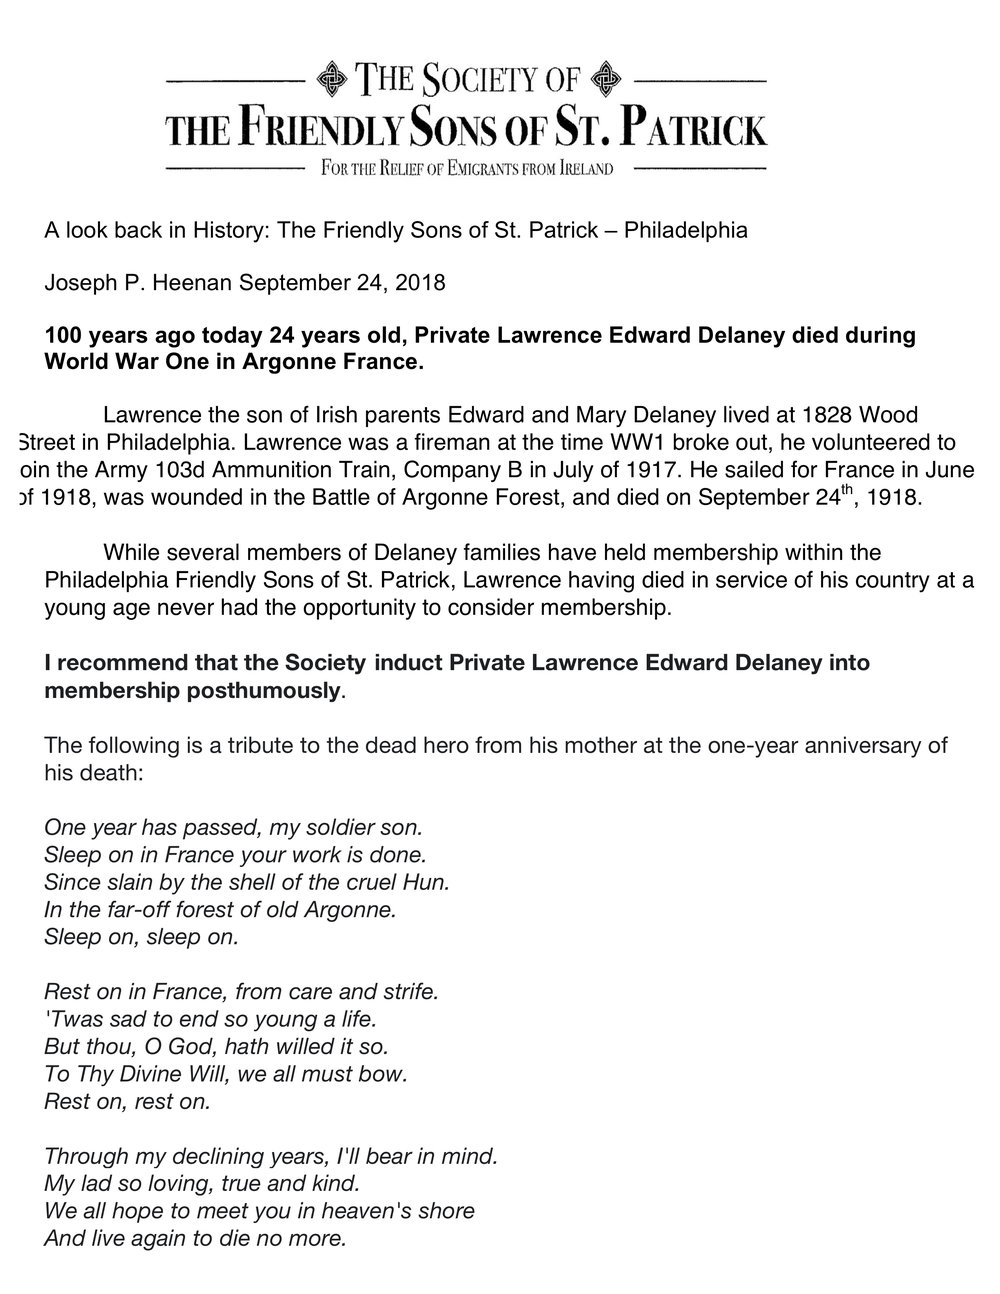 A Look back in History _Philadelphia Friendly Sons of St. Patrick  Private Lawrence Edward Delaney 09-24-2018.jpg